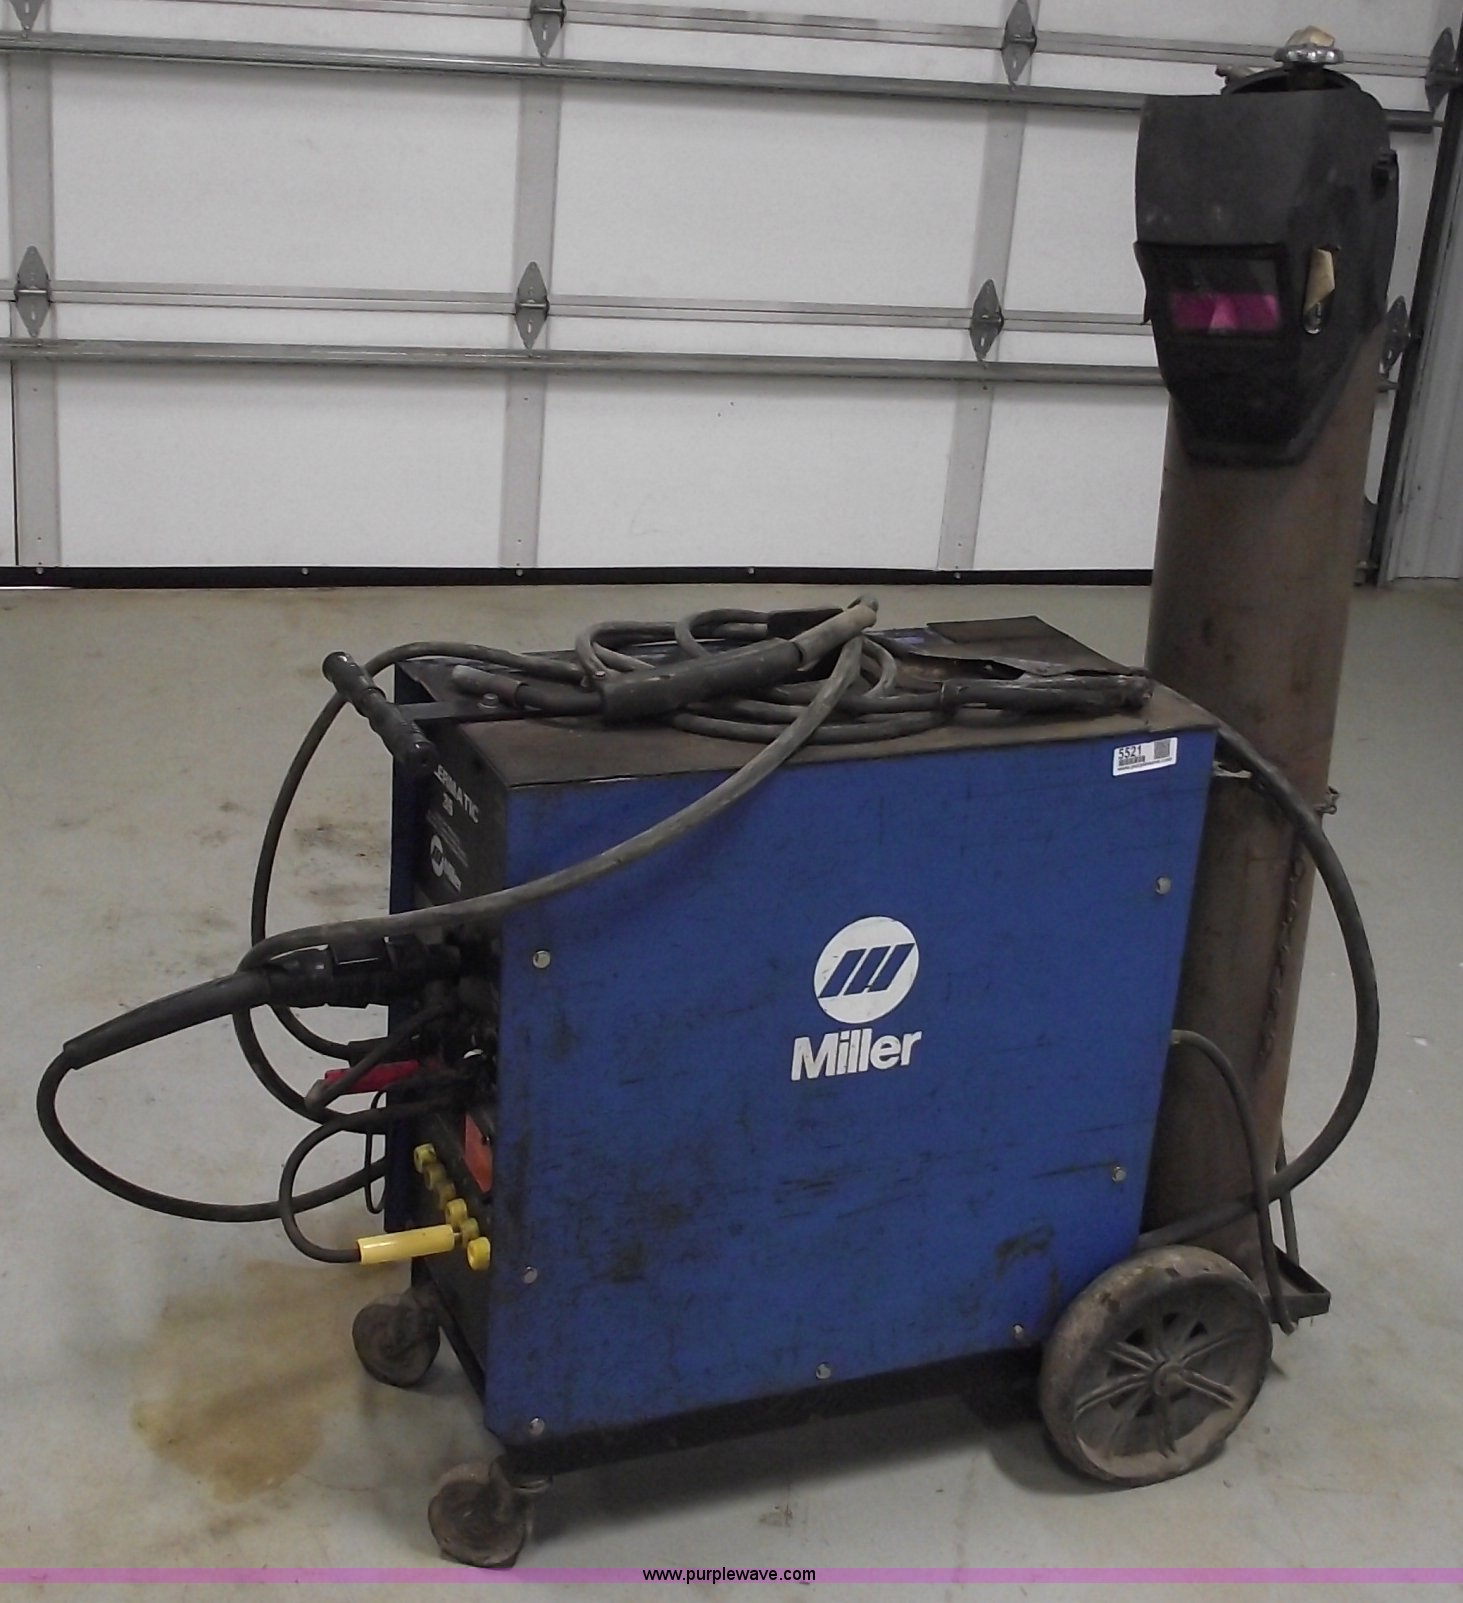 Miller millermatic 35 mig welder item 5521 sold june - Webaccess leroymerlin fr ...